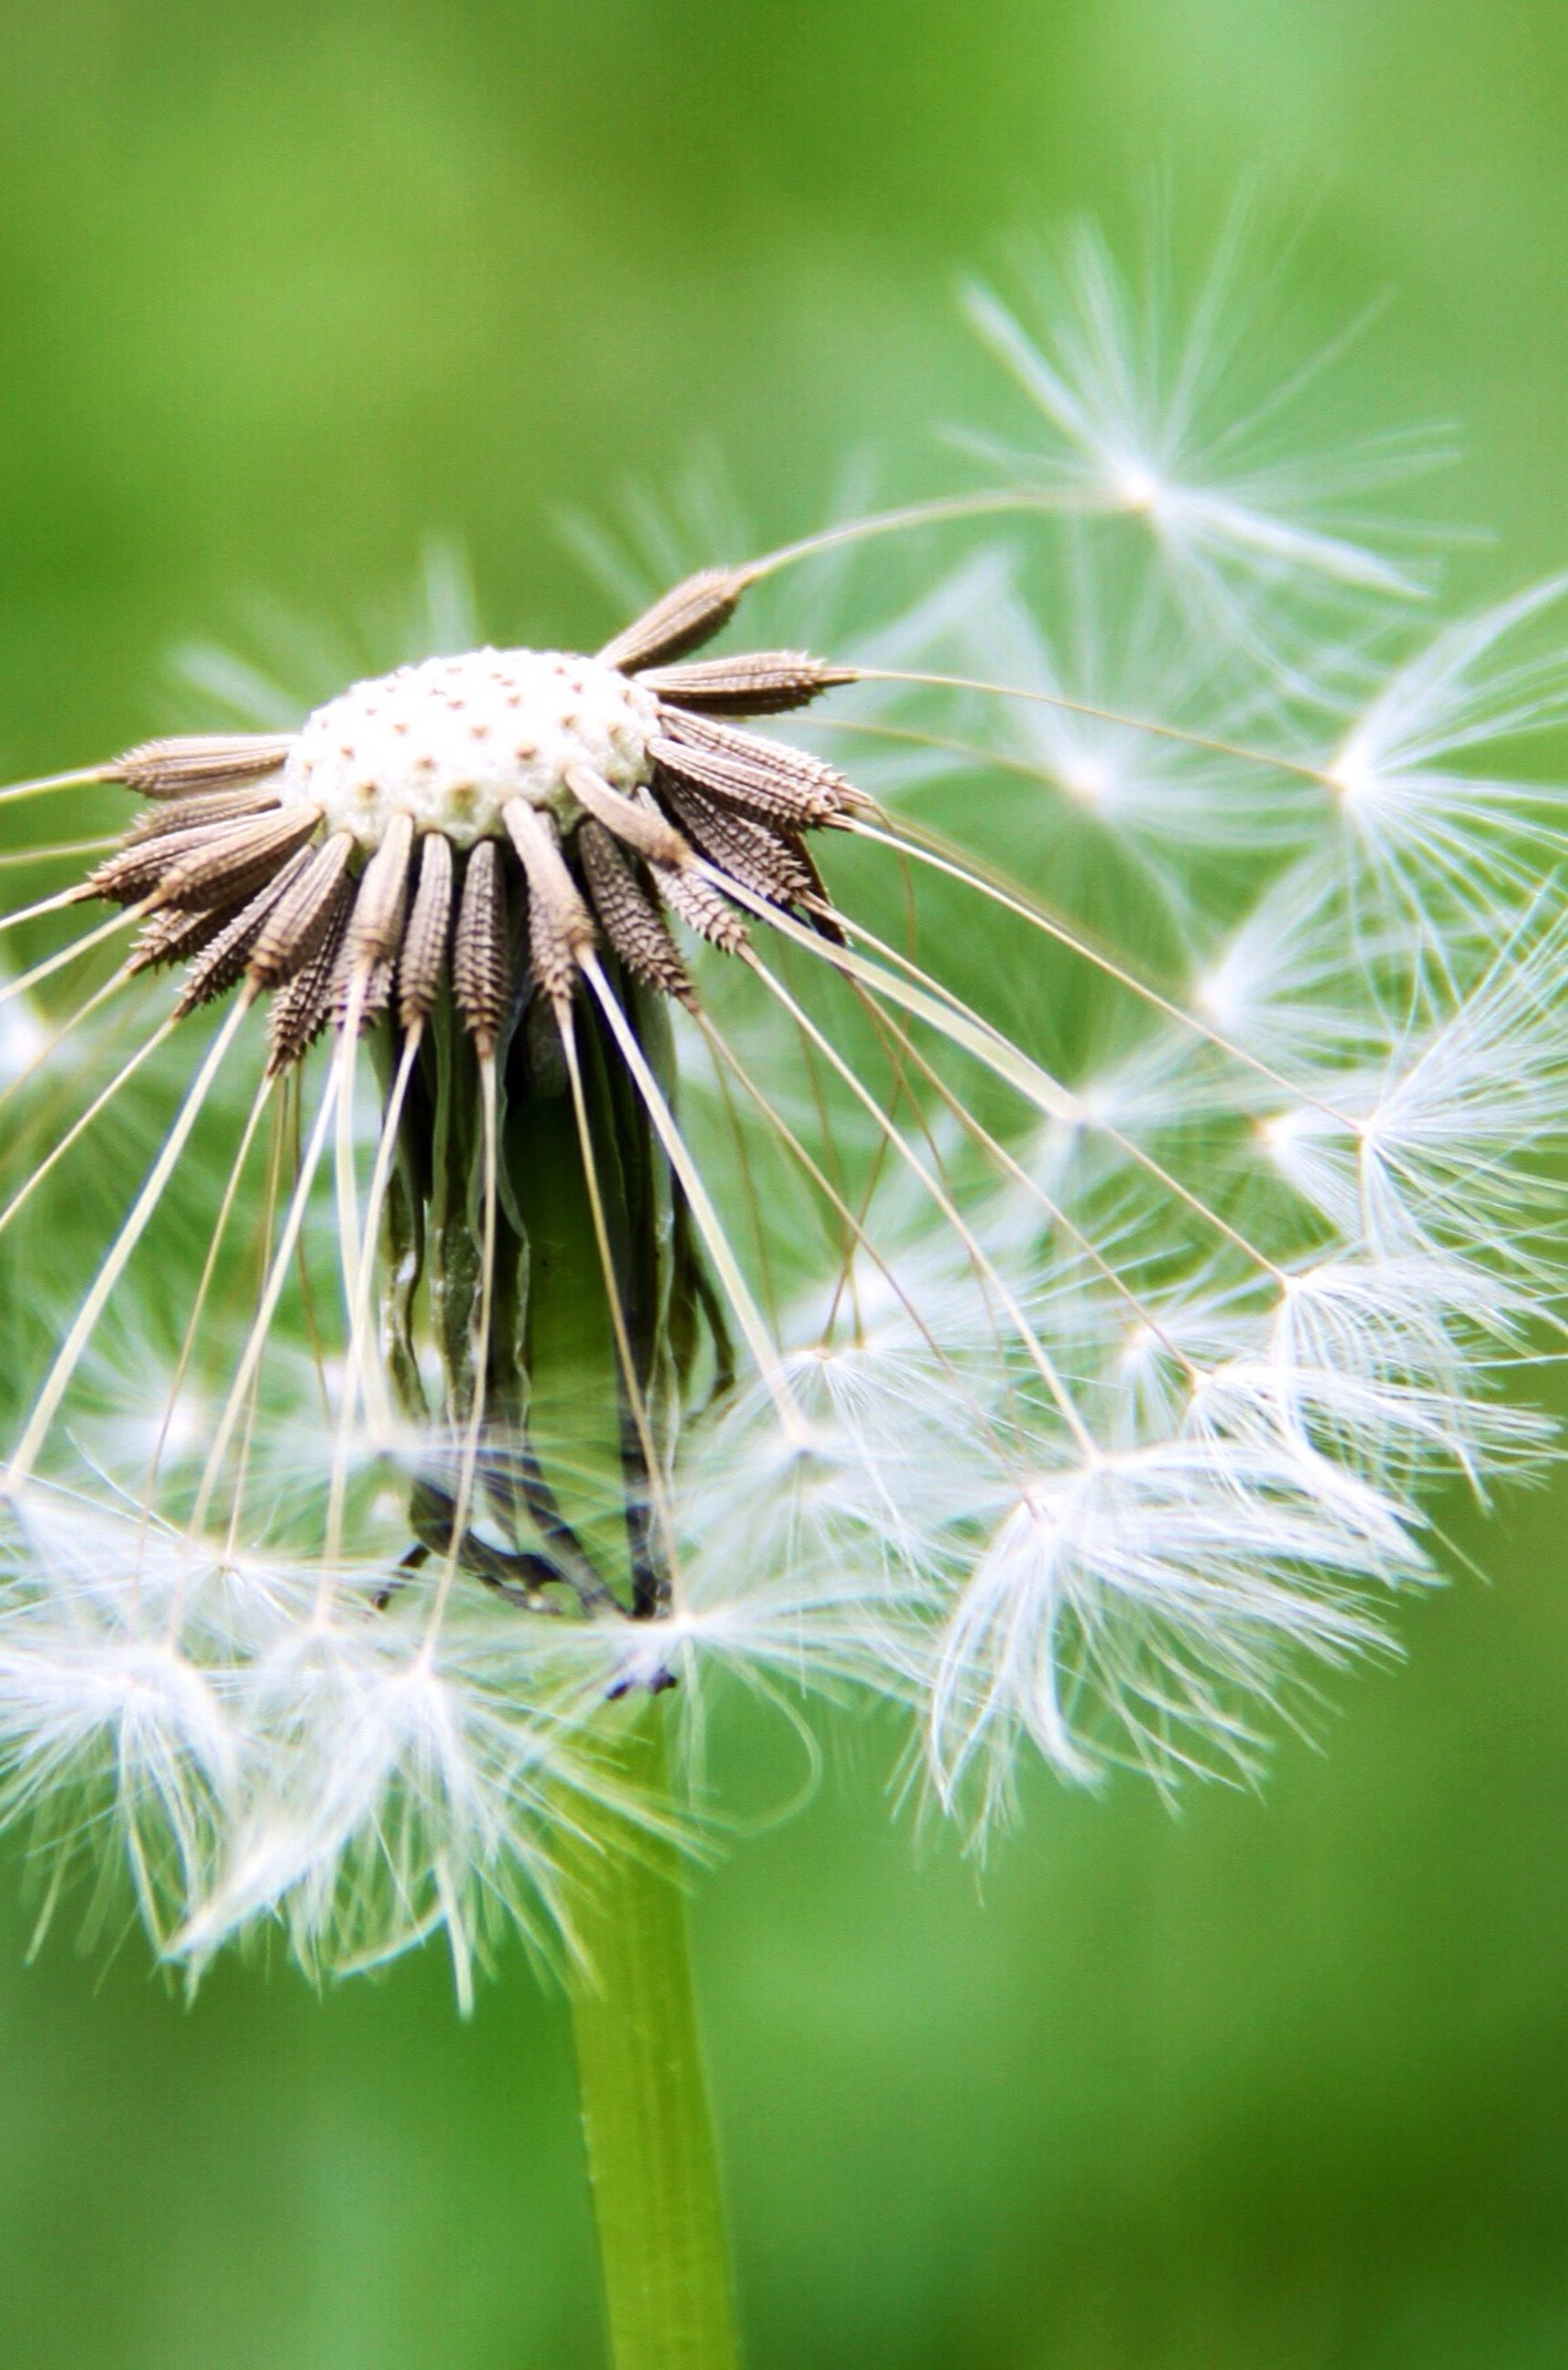 flower, growth, dandelion, focus on foreground, fragility, close-up, freshness, stem, plant, nature, beauty in nature, dandelion seed, flower head, thistle, uncultivated, softness, wildflower, spiked, day, sharp